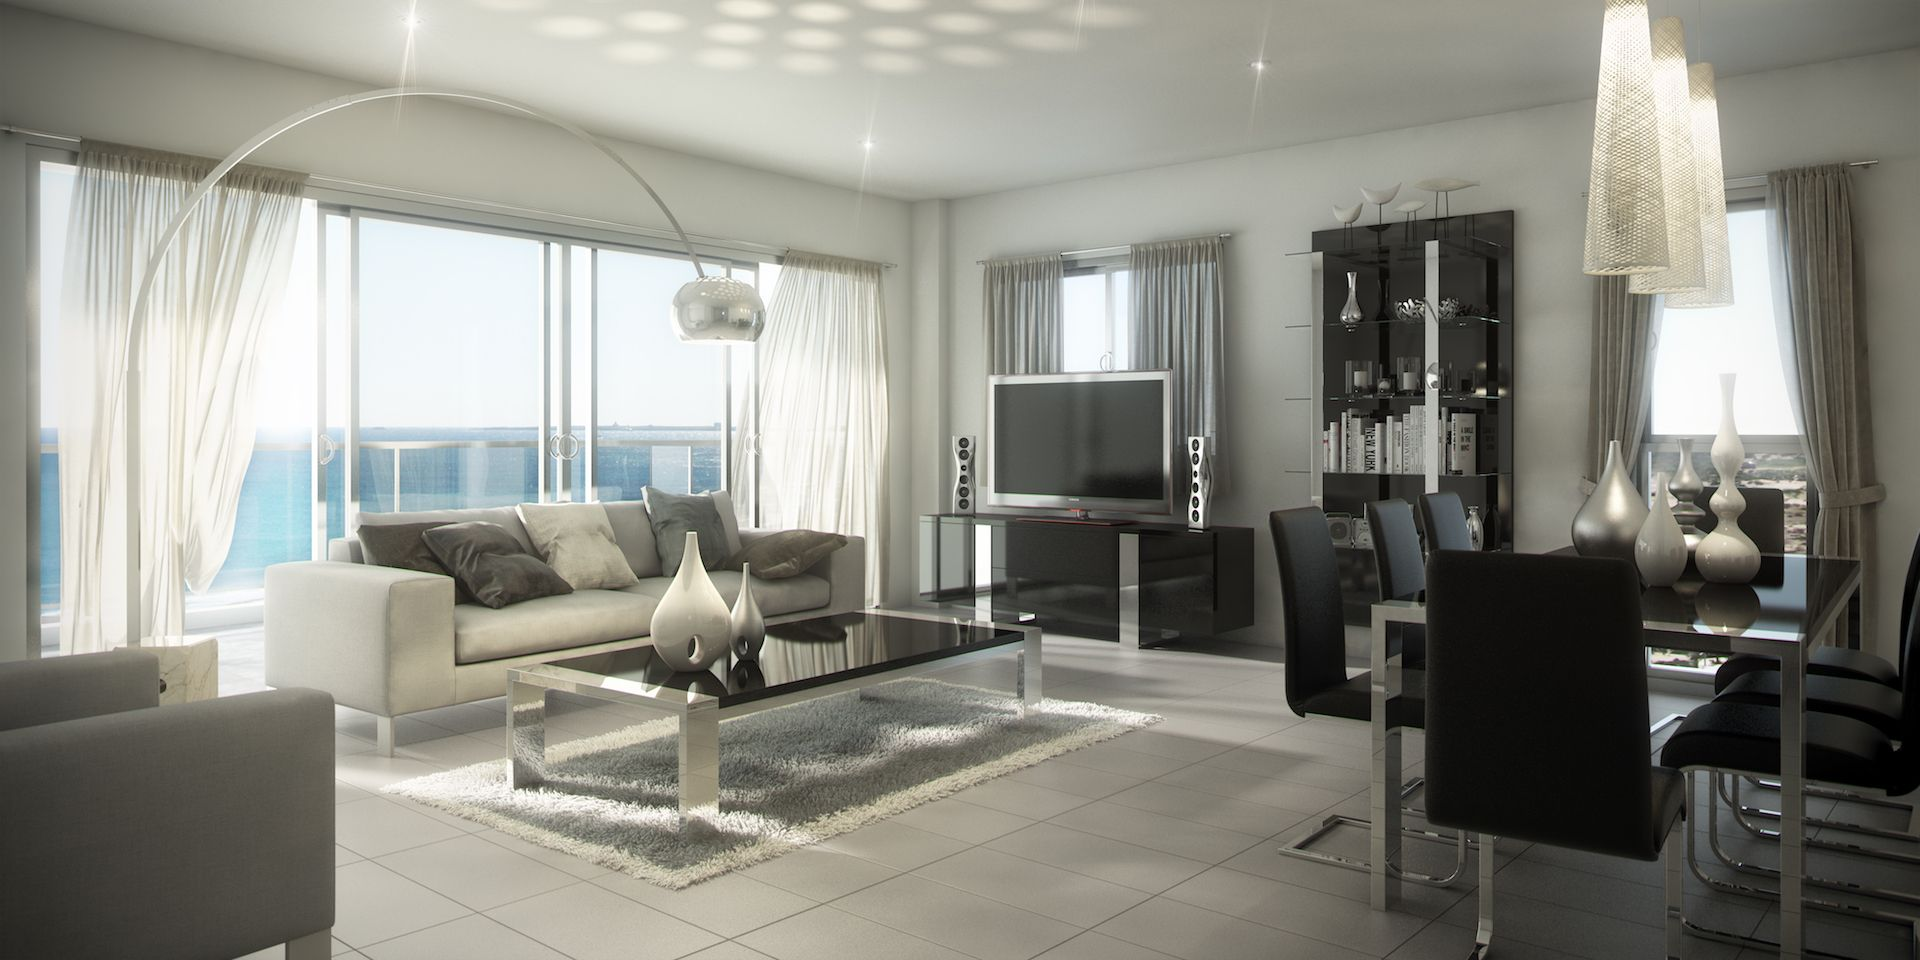 Flats and penthouses of 2, 3 and 4 bedrooms a few meters from the sea in Arenales del Sol. 19